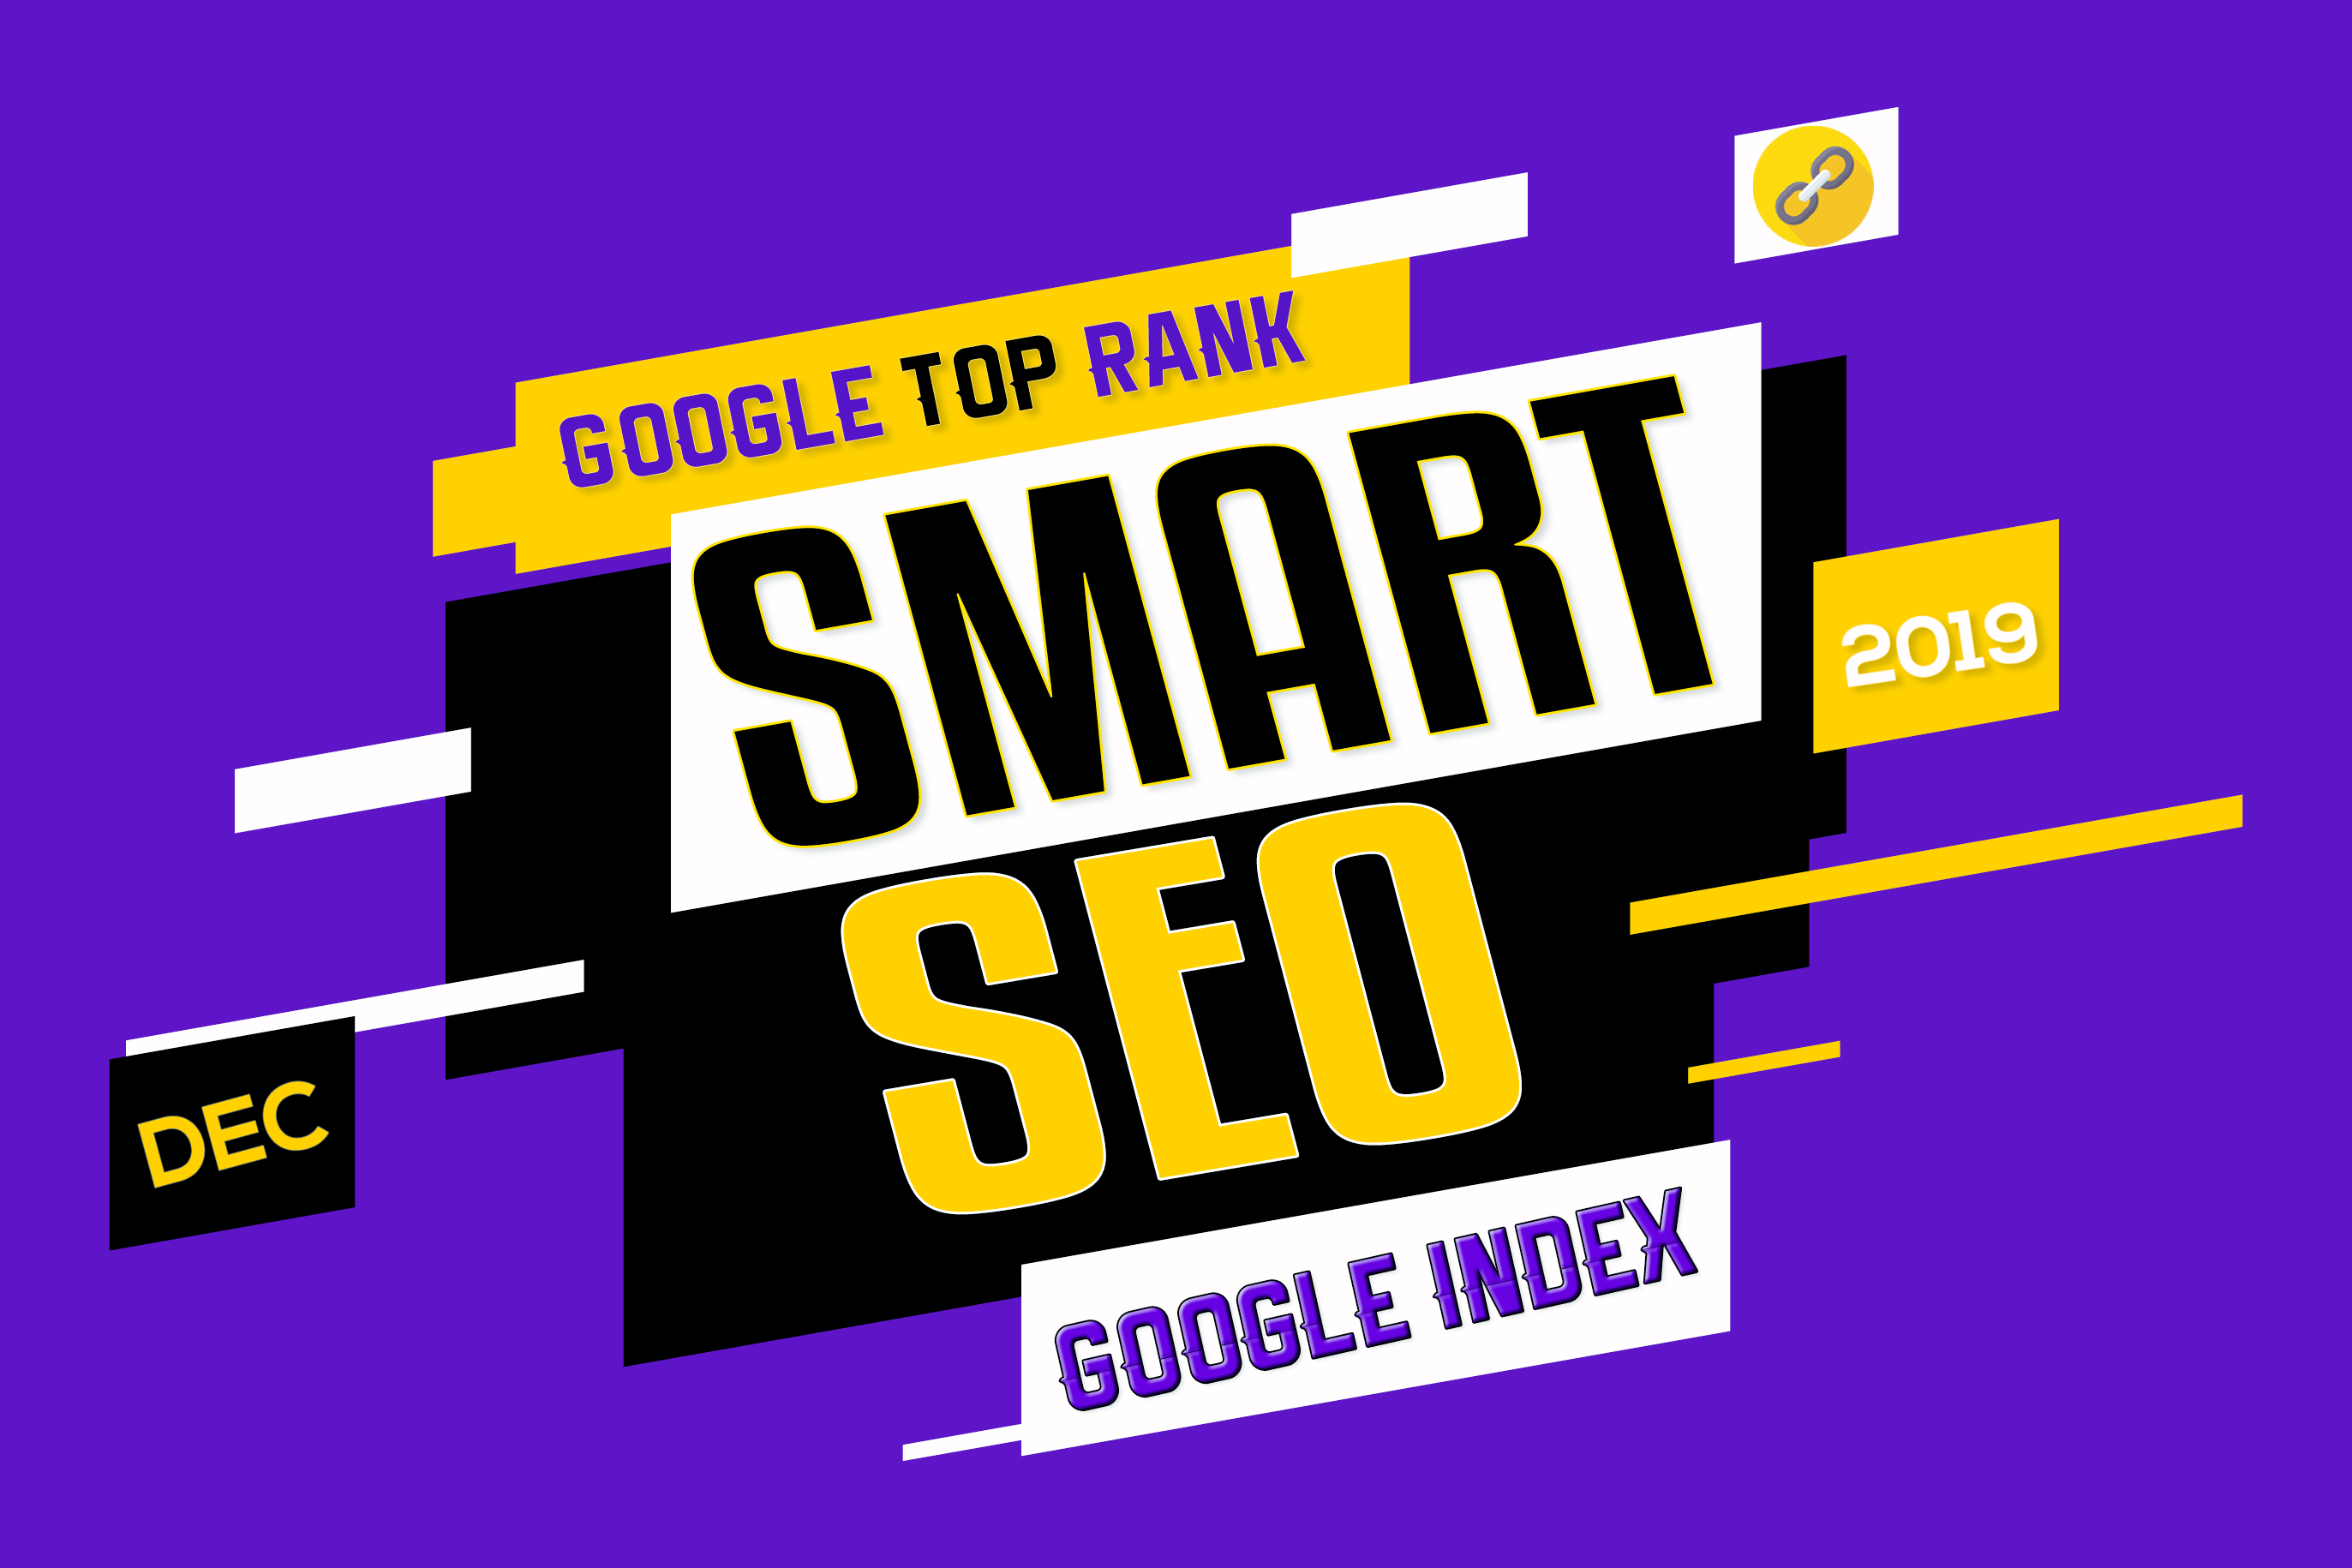 Manually & Latest 2019 Smart SEO Package with Google Index High PR Quality 250+ Backlinks